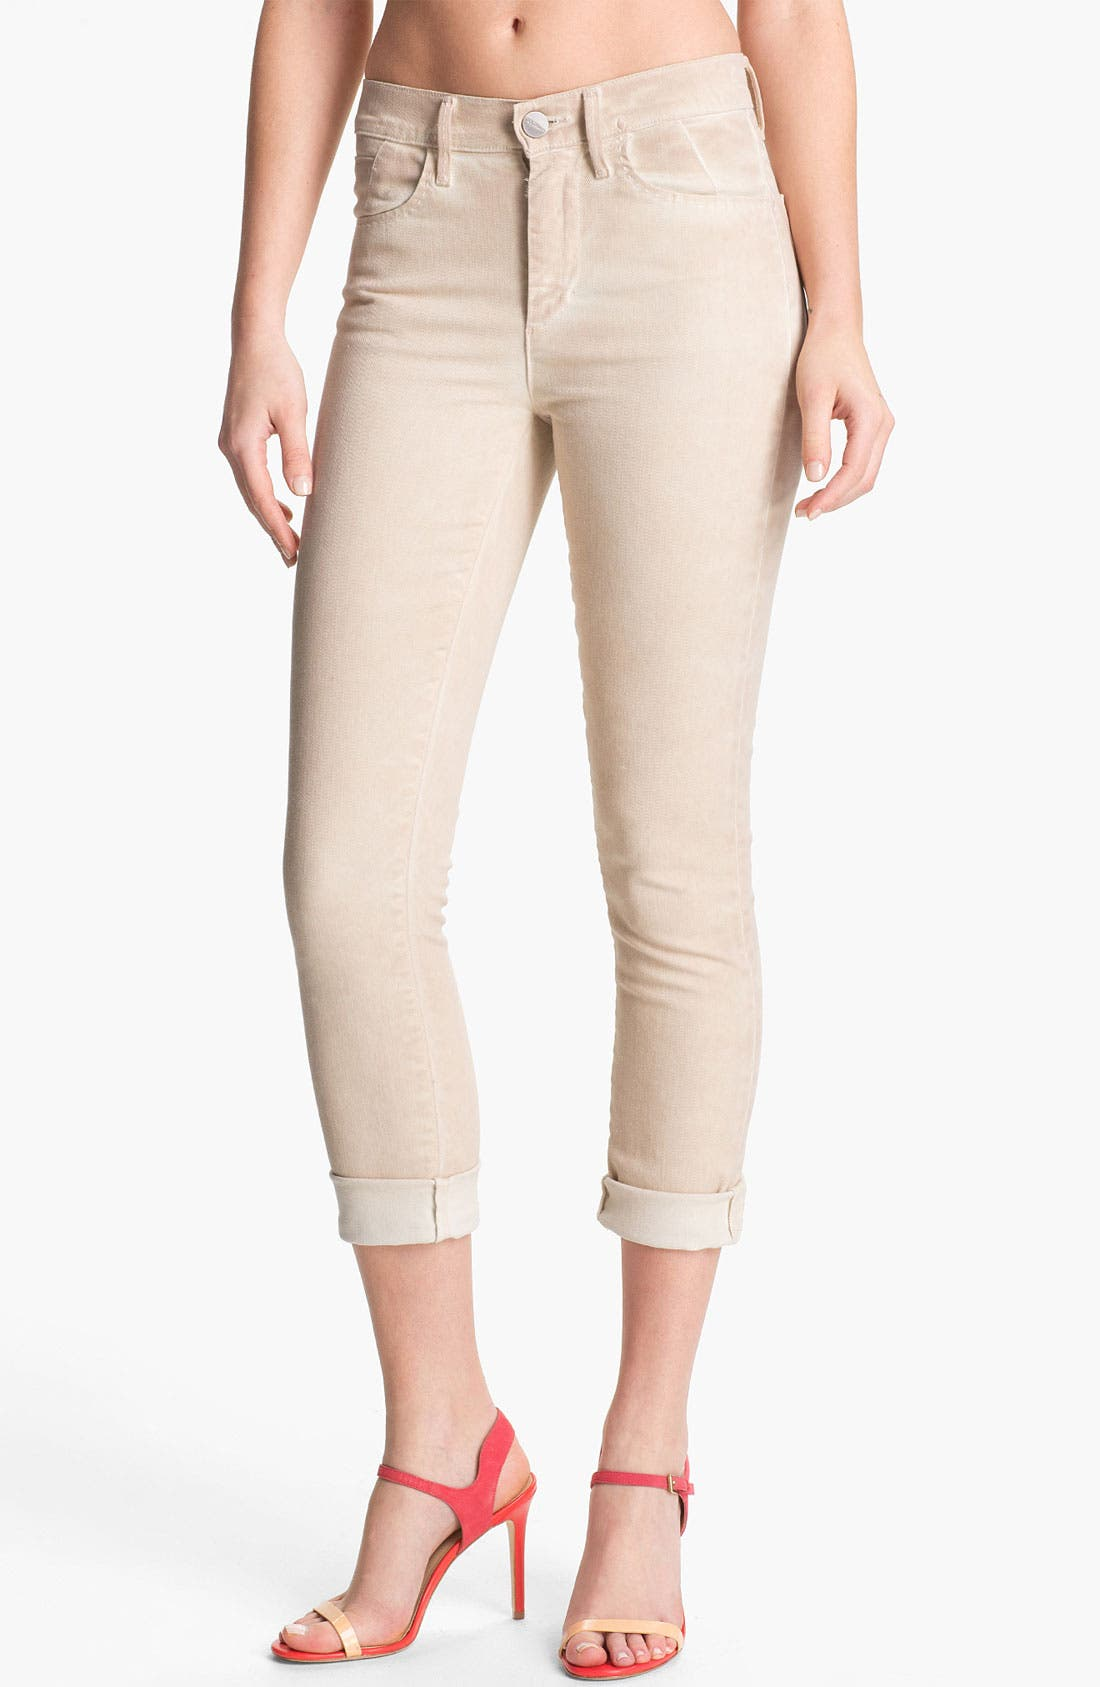 Alternate Image 1 Selected - Goldsign 'Jenny' High Waist Crop Skinny Jeans (Cream)